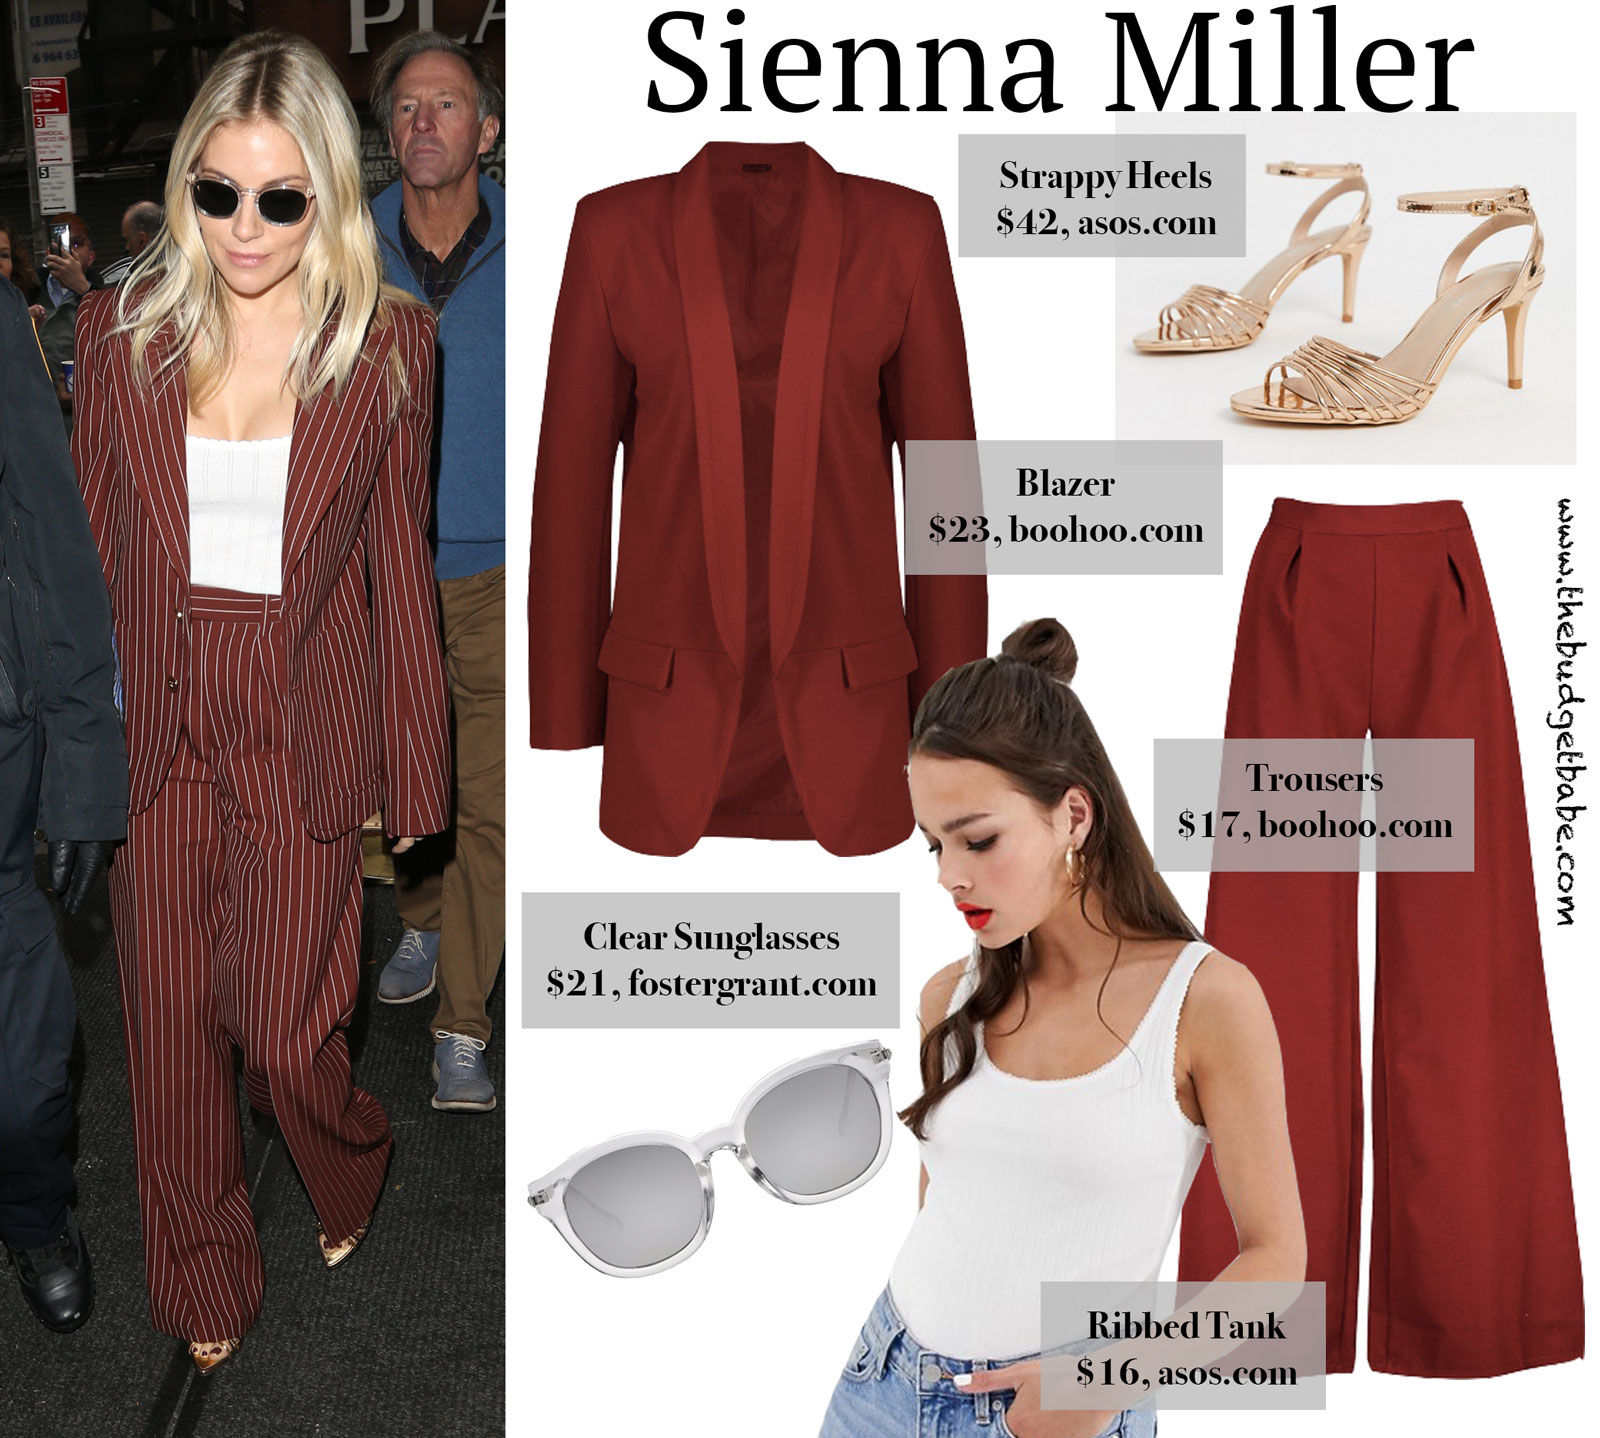 Sienna Miller Burgundy Suit Look for Less